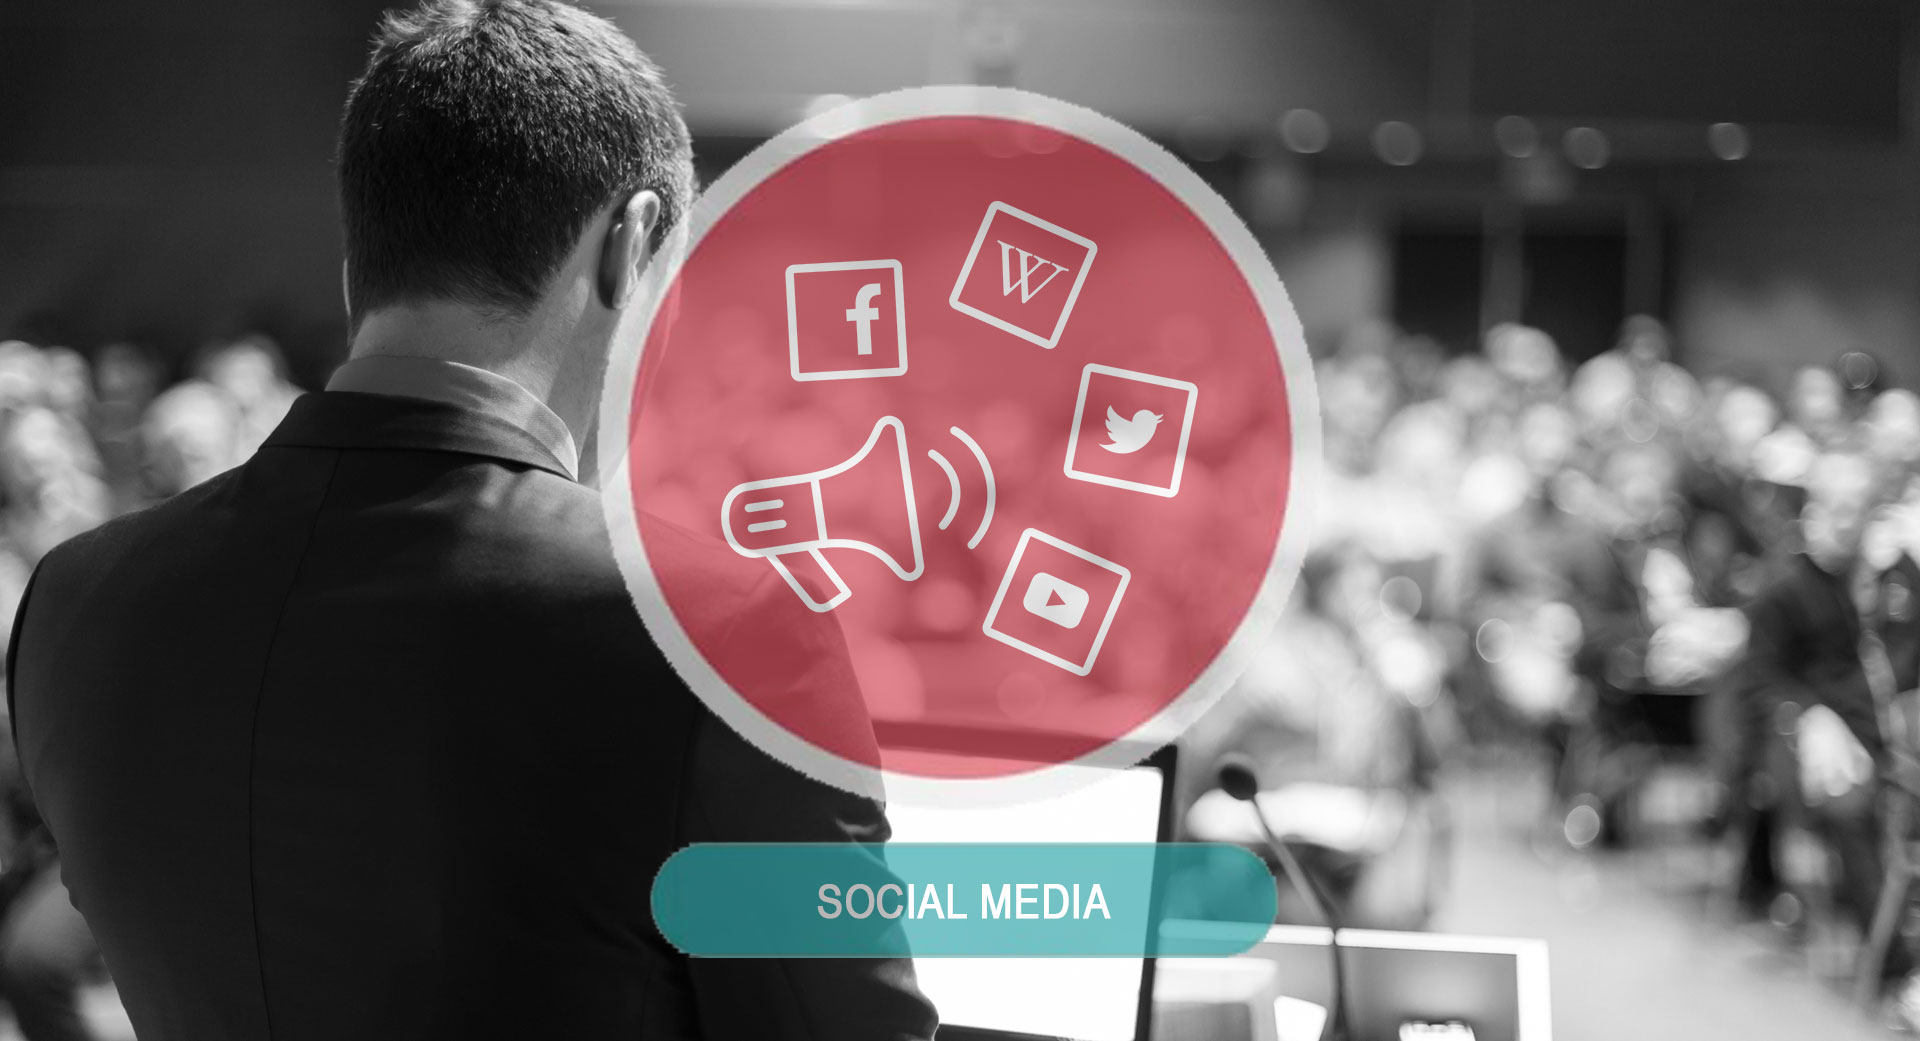 5-ways-to-promote-your-event-online-social-media